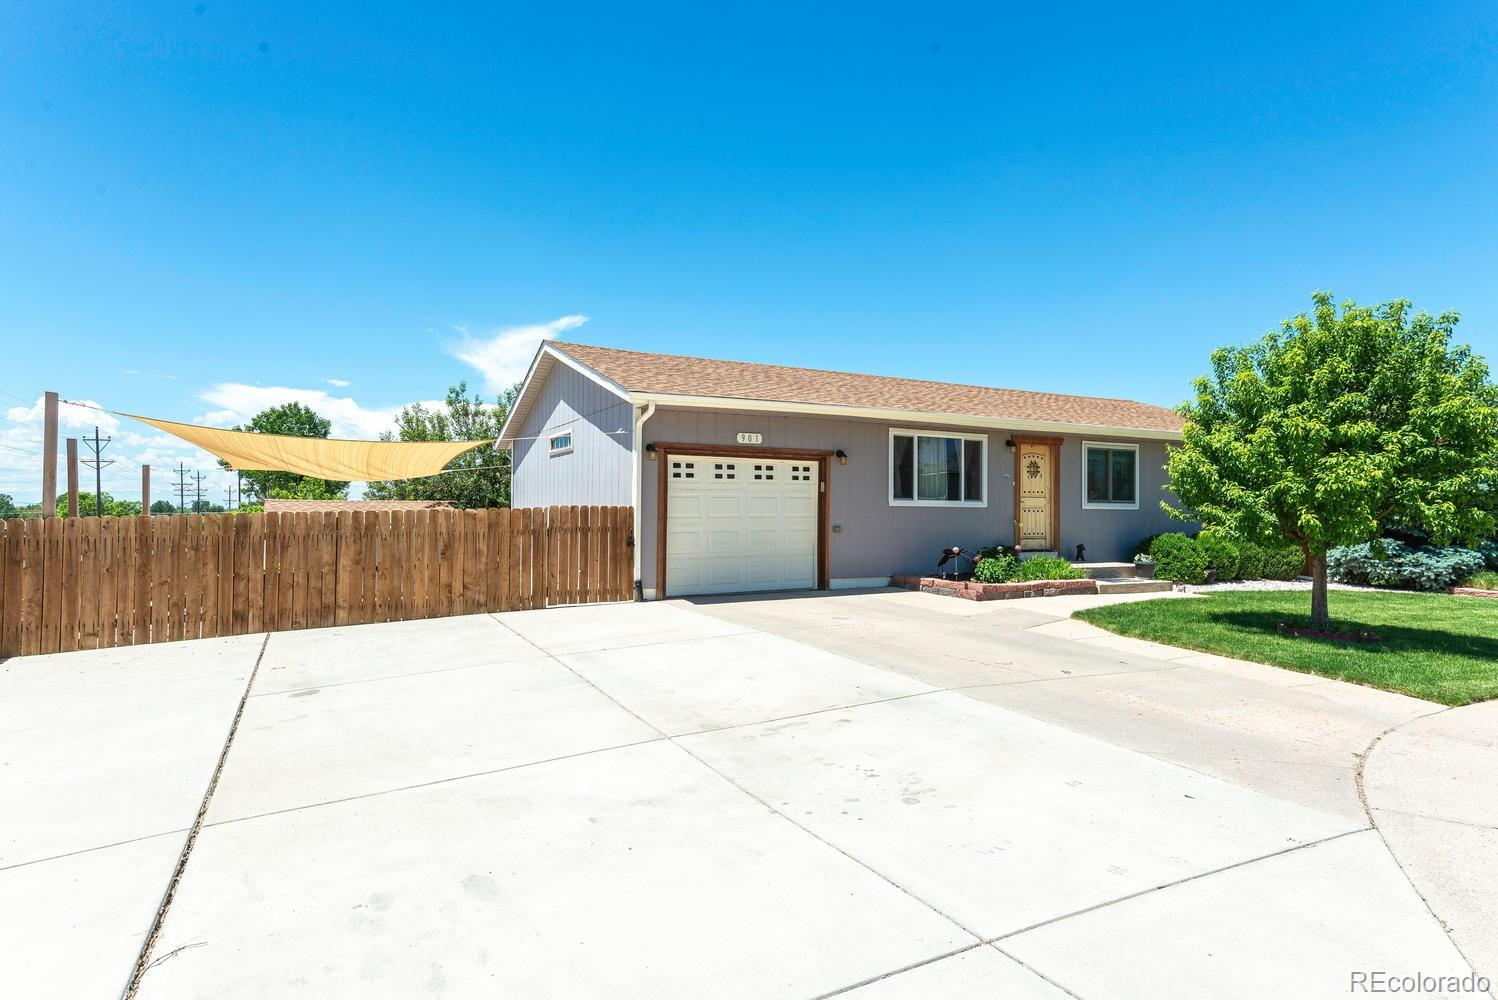 MLS# 7060125 - 3 - 901 Cottonwood Court, Fort Lupton, CO 80621